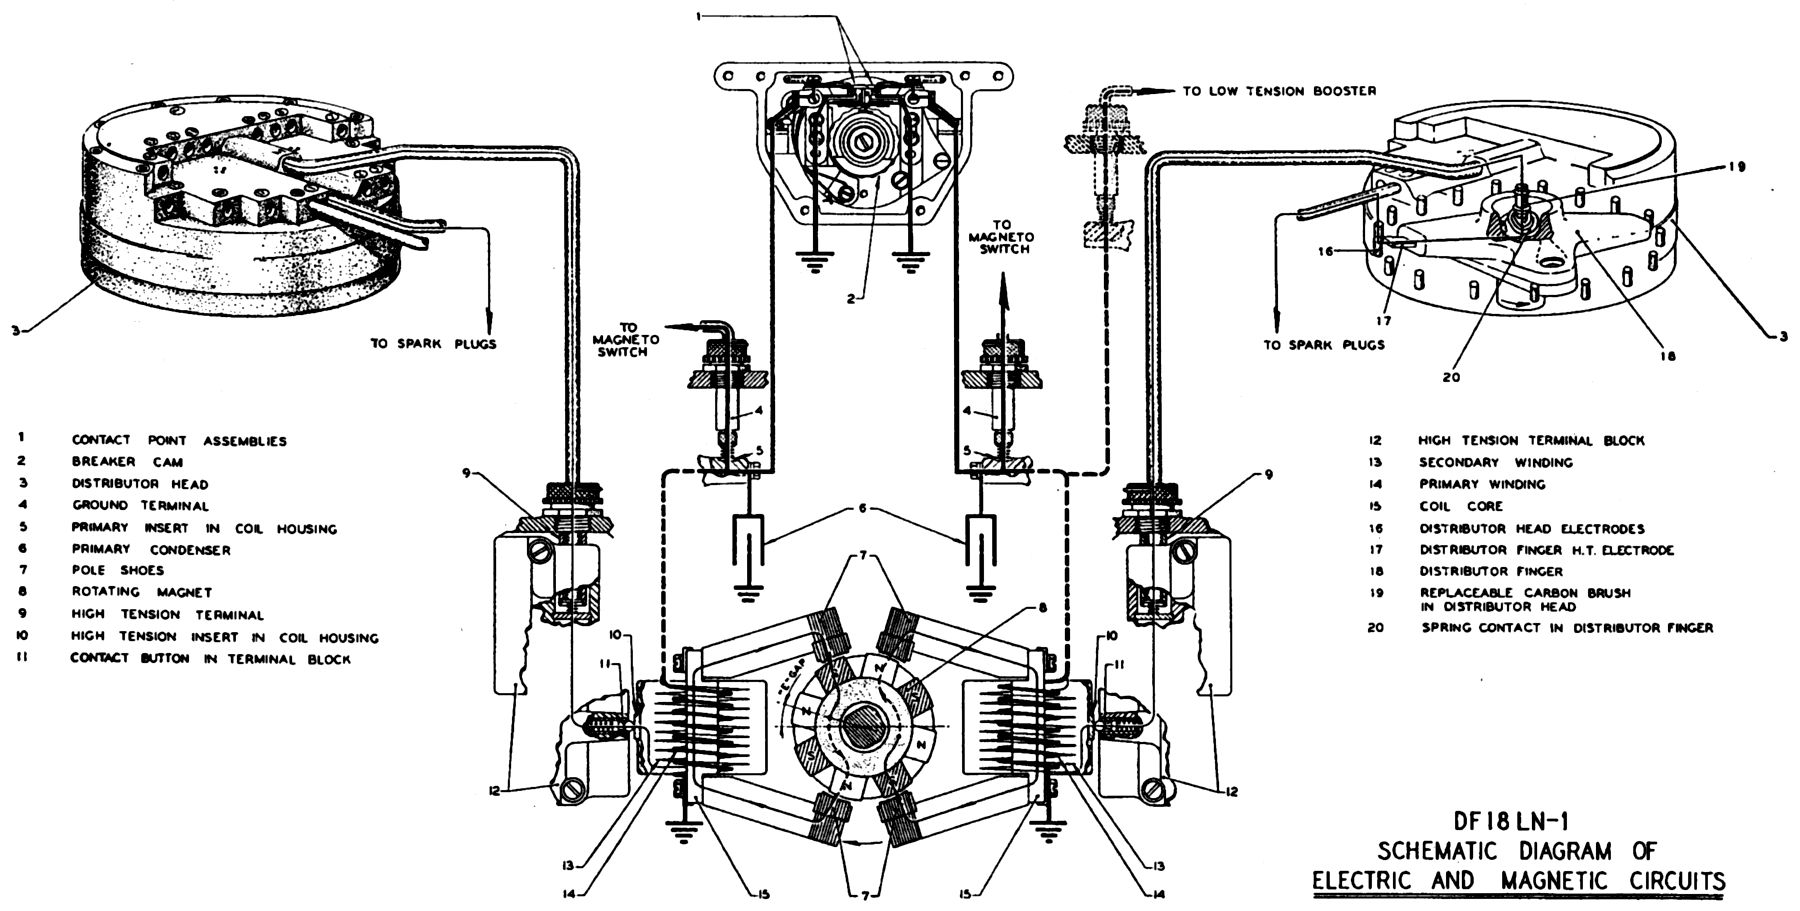 enginehistory org view topic r2800 ignition system questions rh enginehistory org Magneto Ignition System Diagram Bendix Magneto Parts